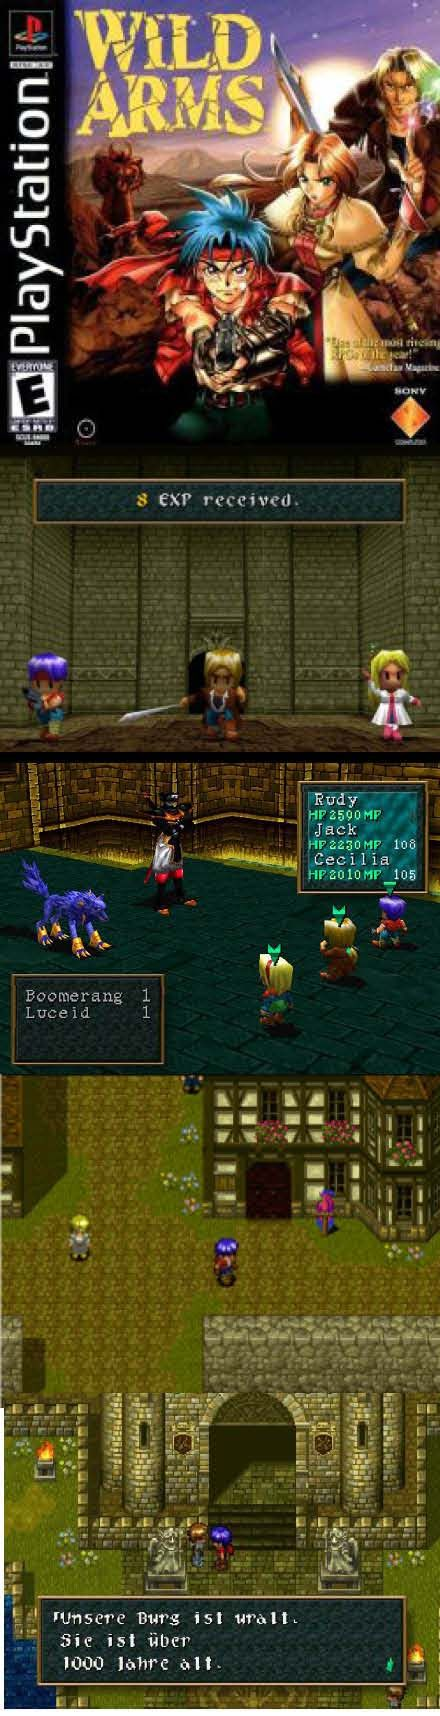 #RetroGamer #WildArms was released 20 years ago and it is still a great #RPG, gamers take notice! http://www.levelgamingground.com/wild-arms-review.html